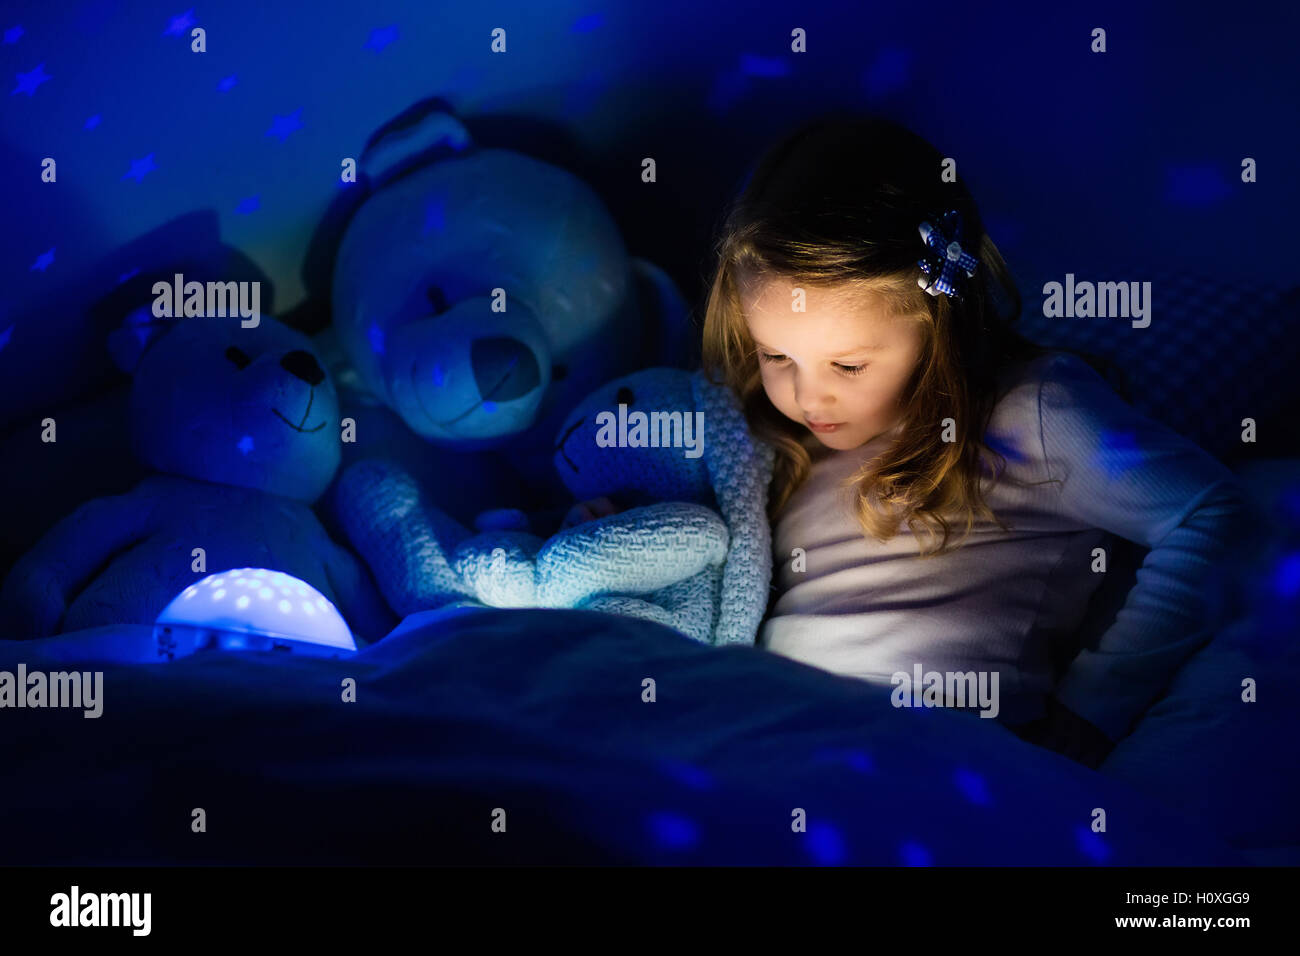 Girl Night Lights Little Girl Reading A Book In Bed Dark Bedroom With Night Light